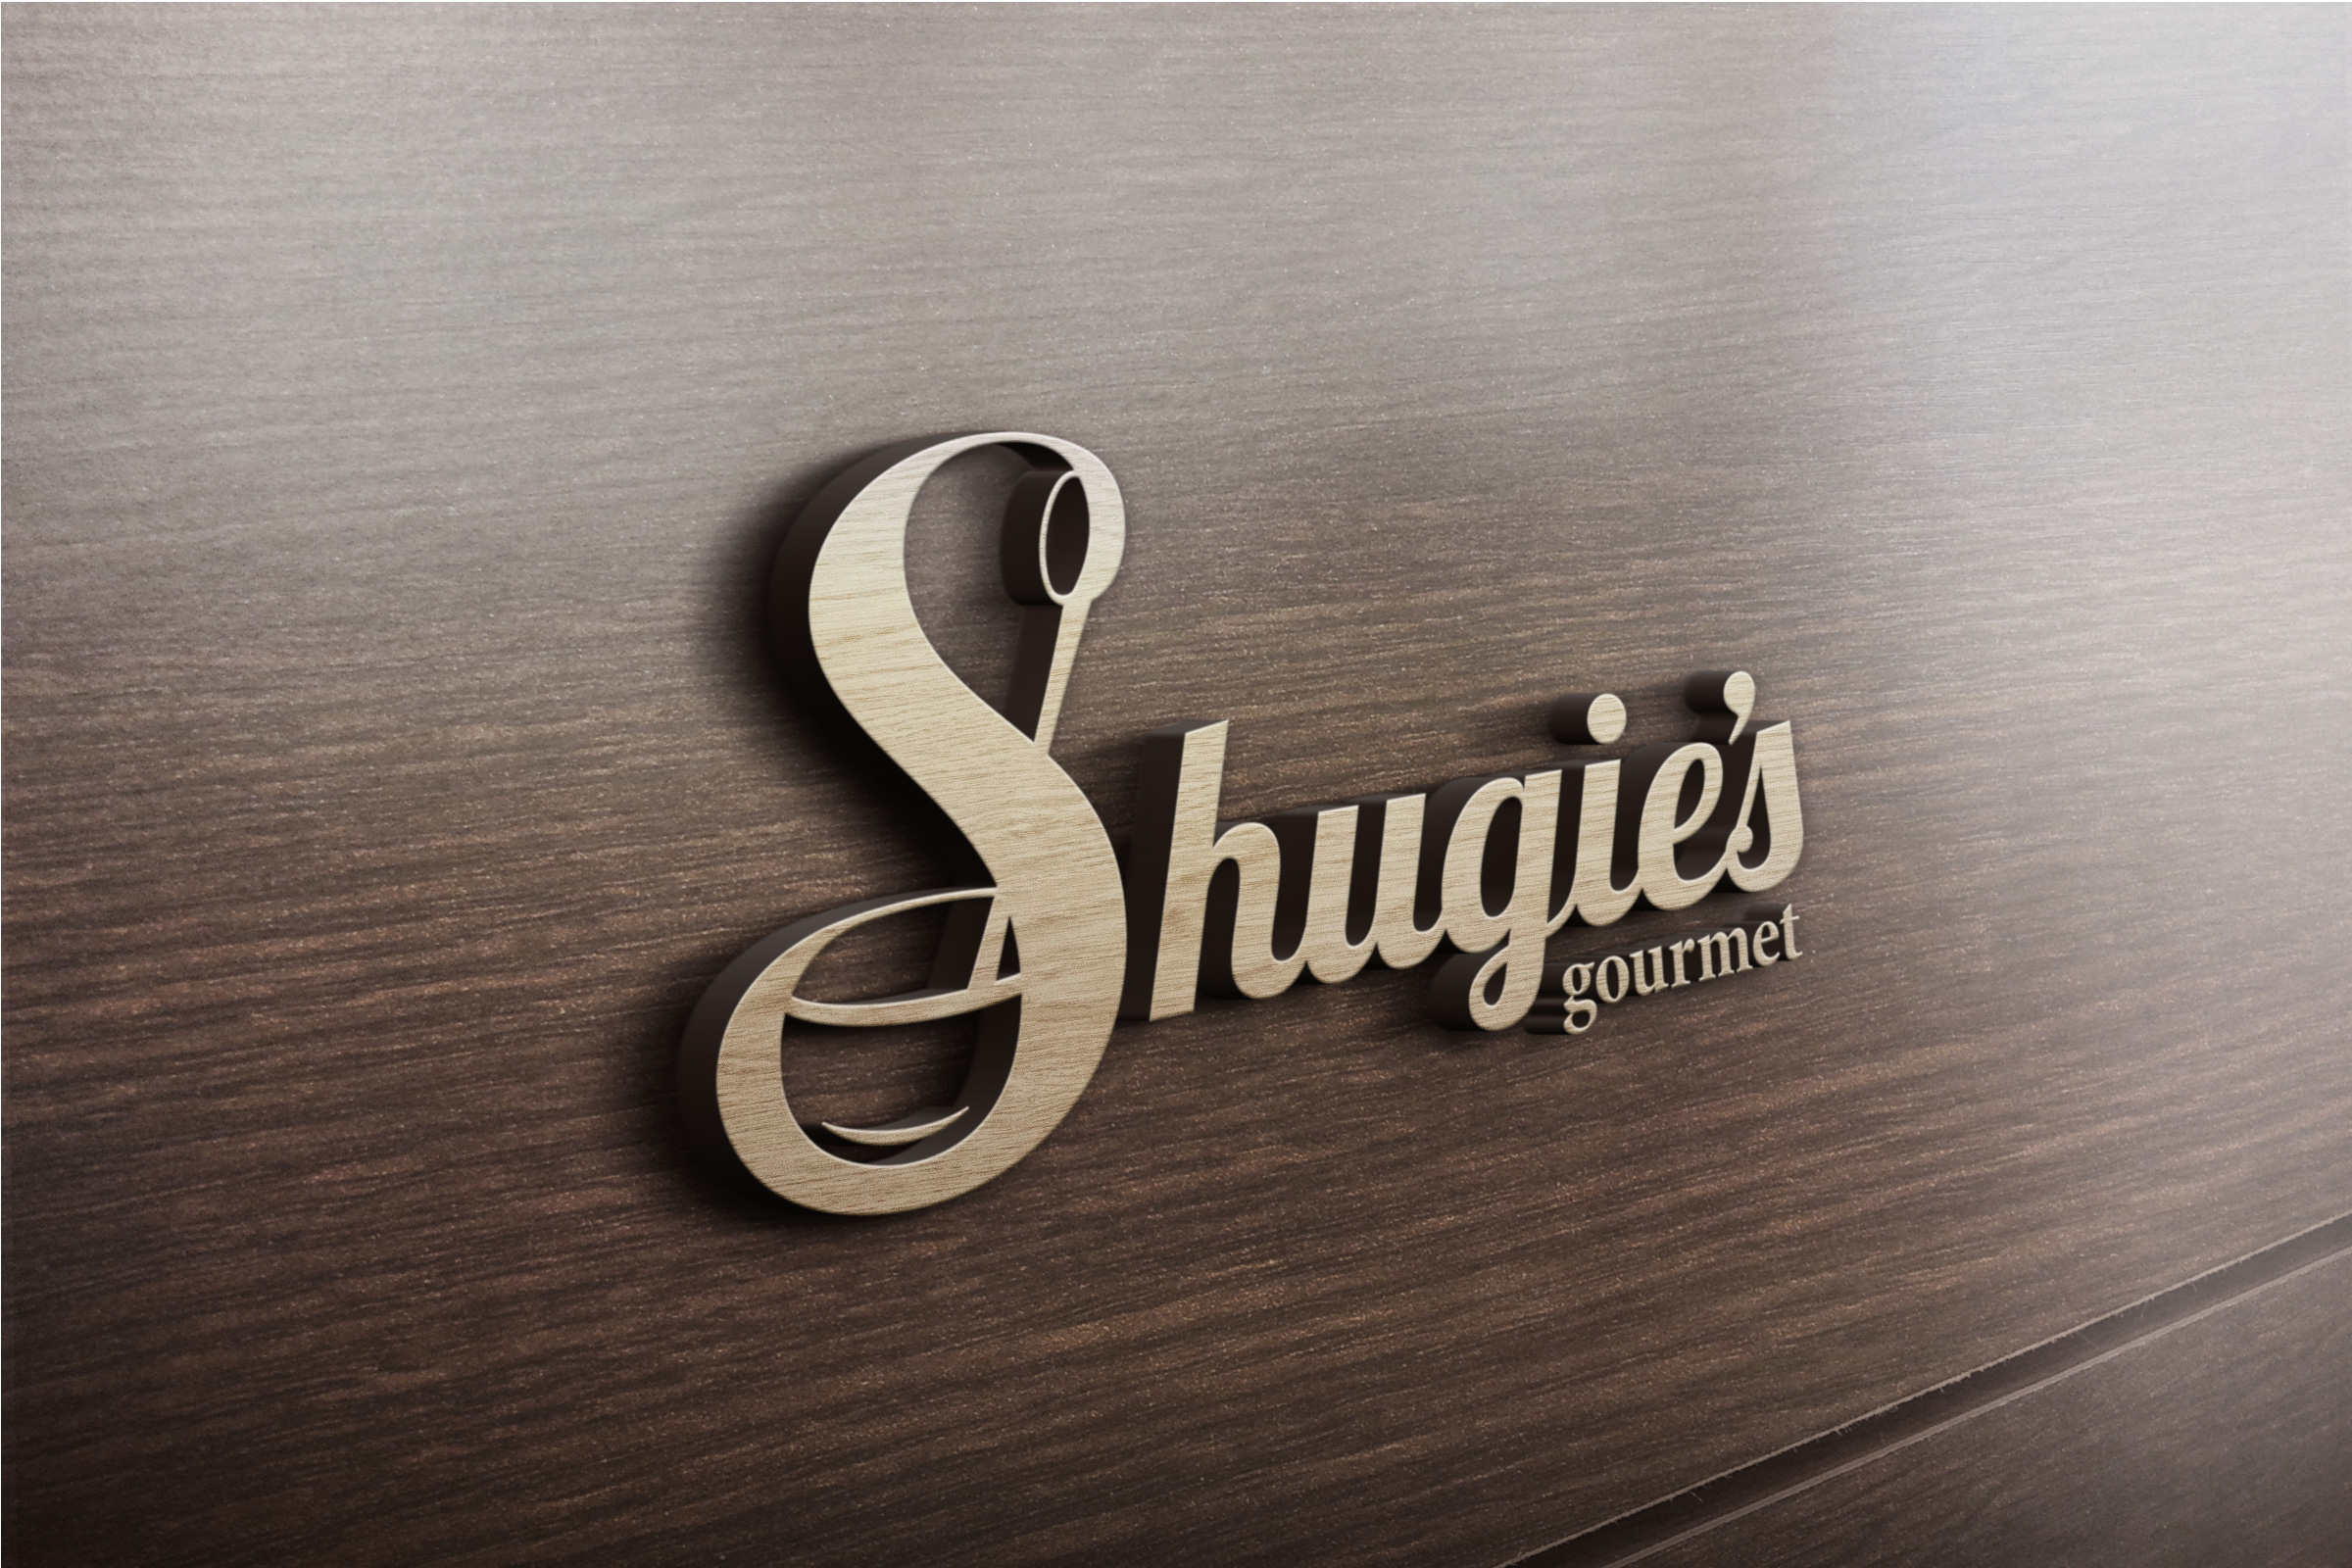 Shugie's Logo on Wood Signage.